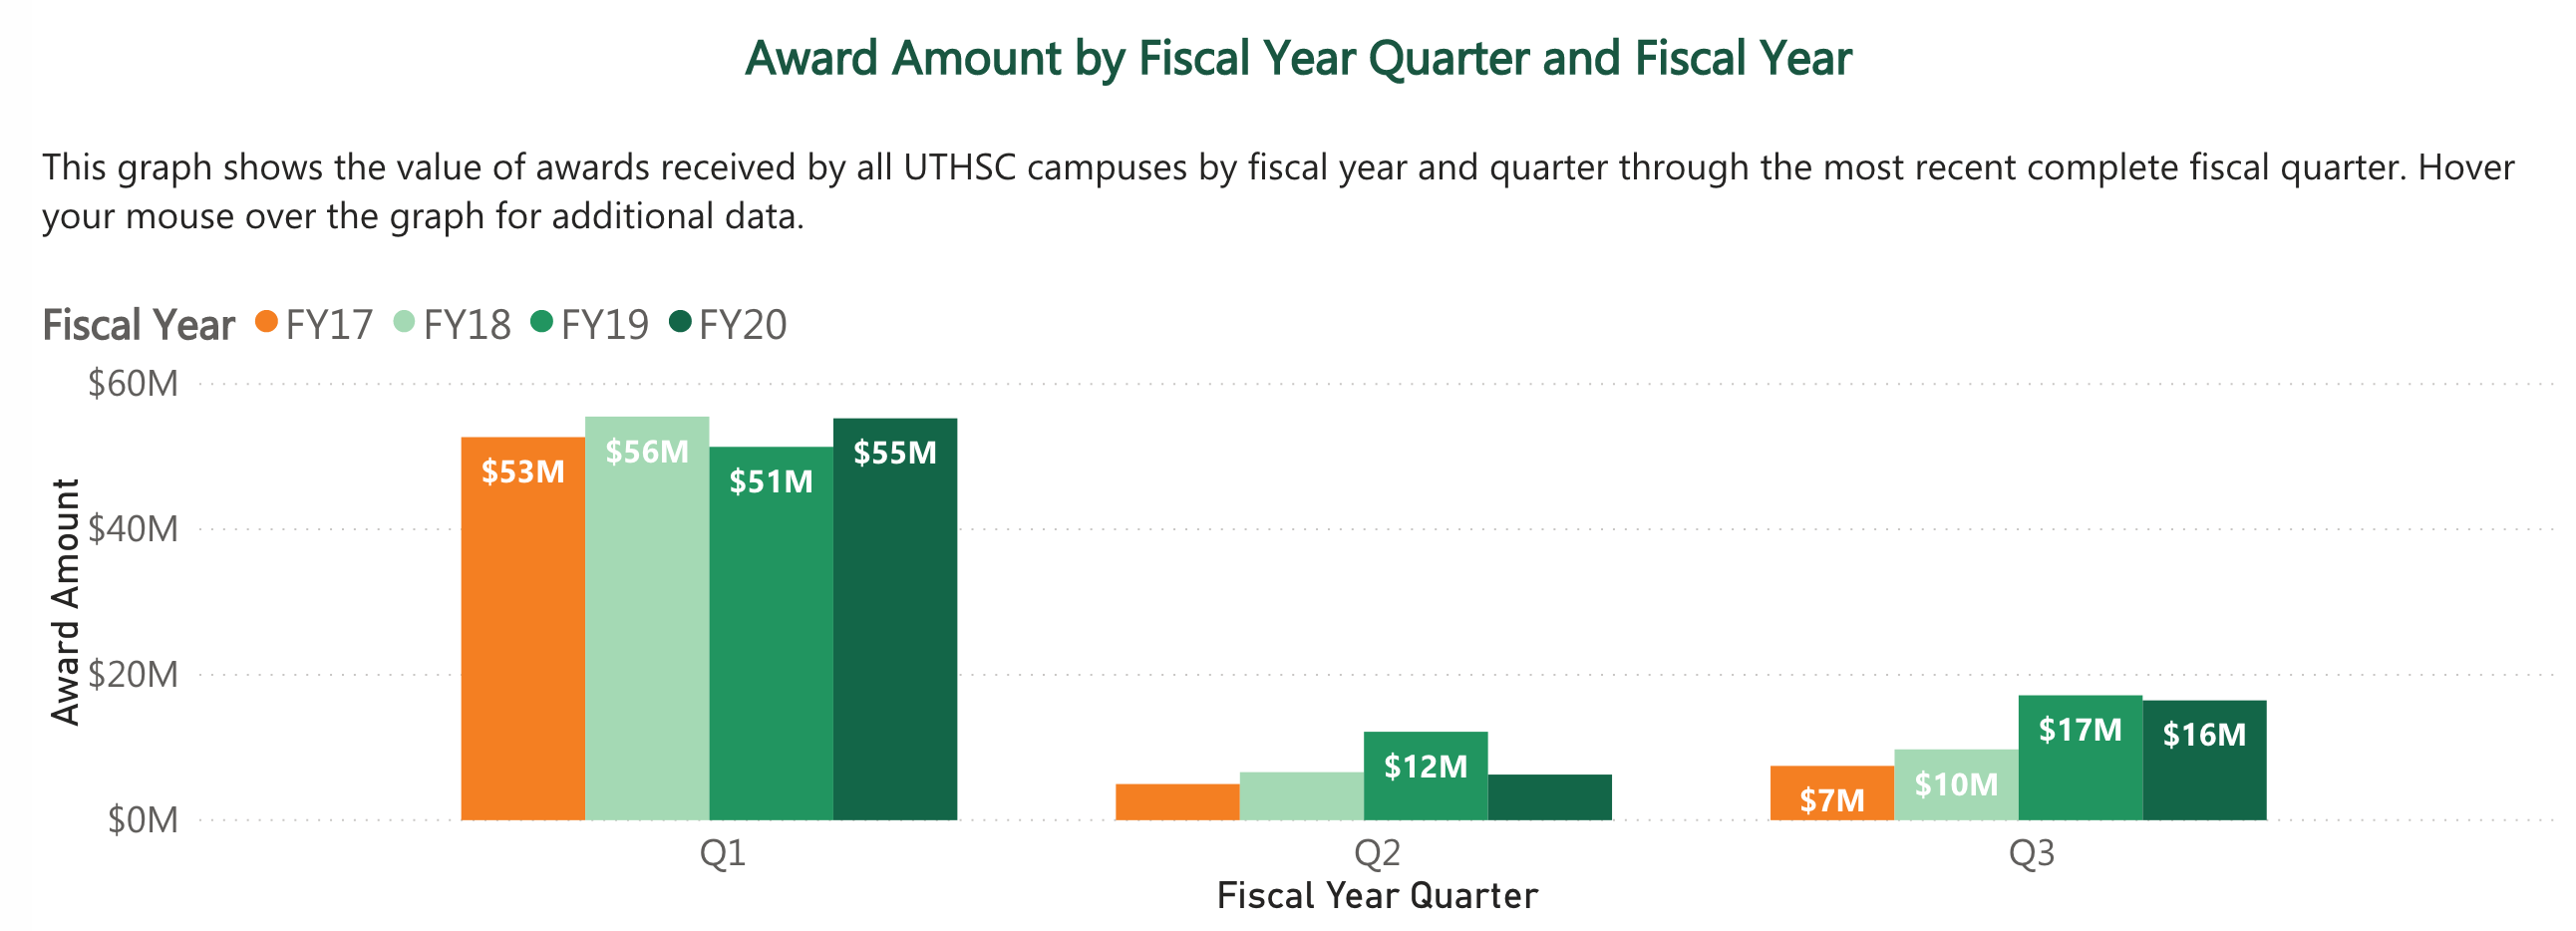 Award Amount by Fiscal Year and Fiscal Quarter